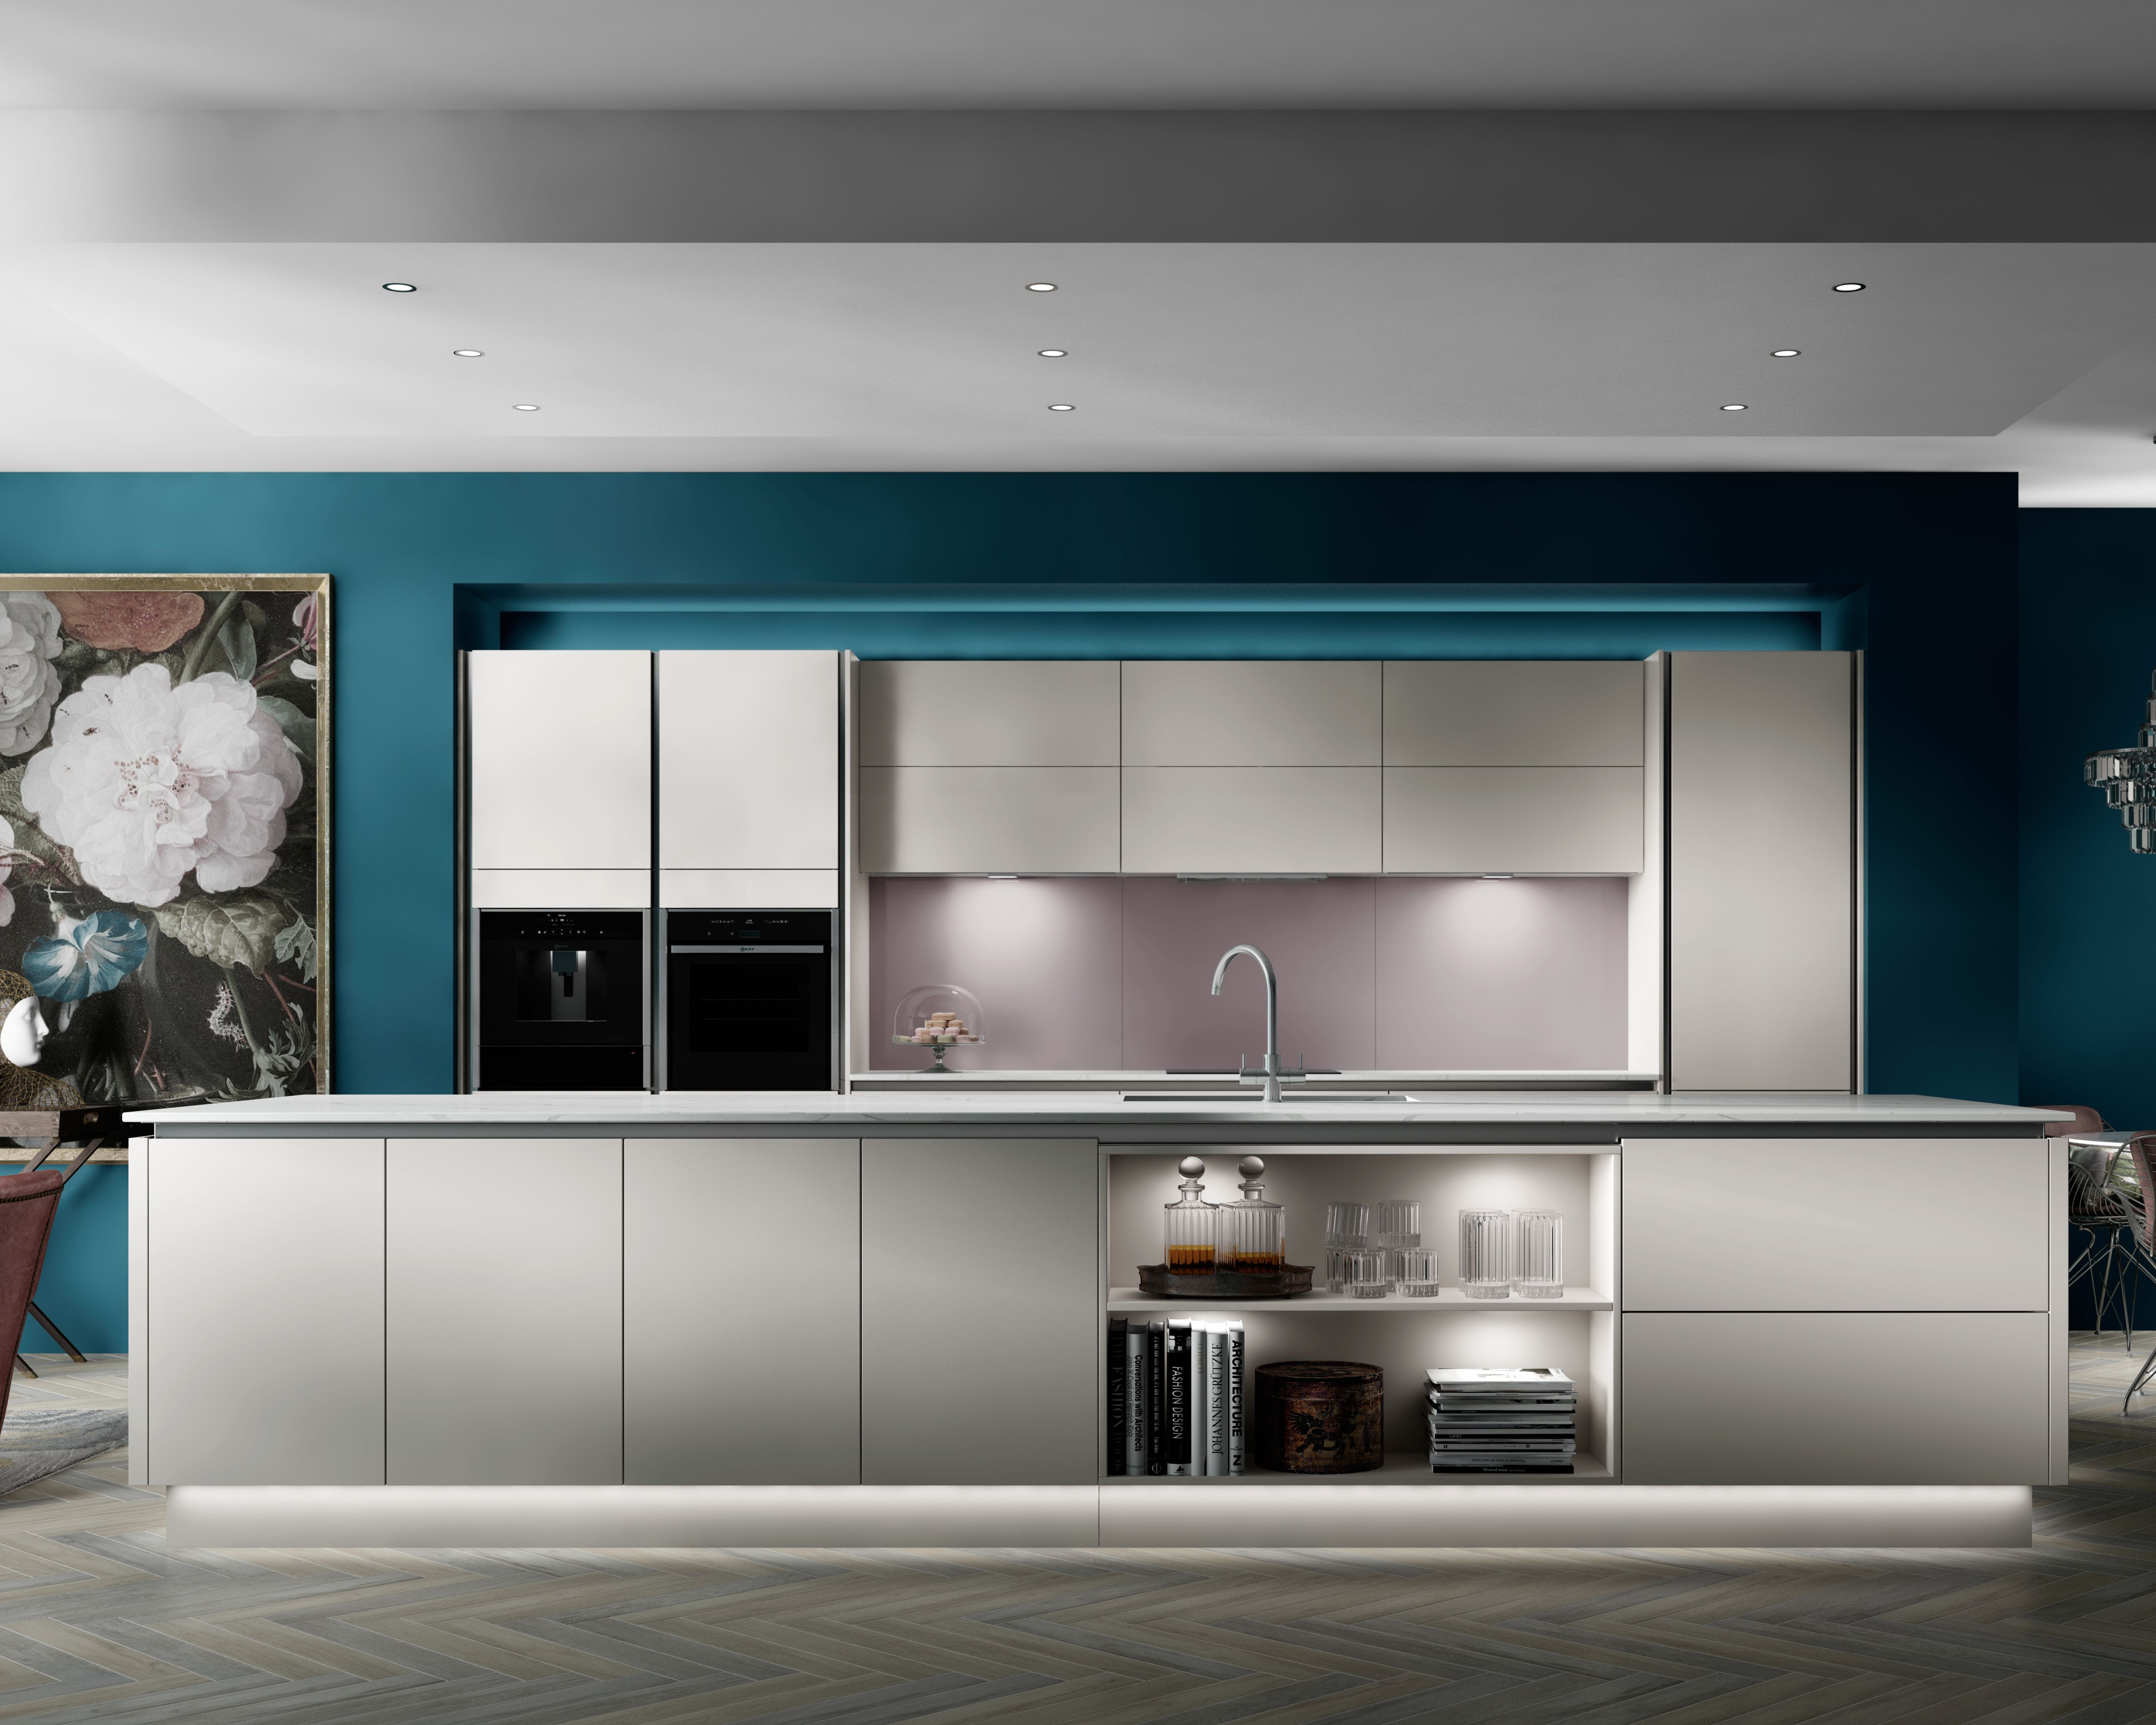 Wickes Fitted And Ready To Fit Kitchens | Wickes.co.uk